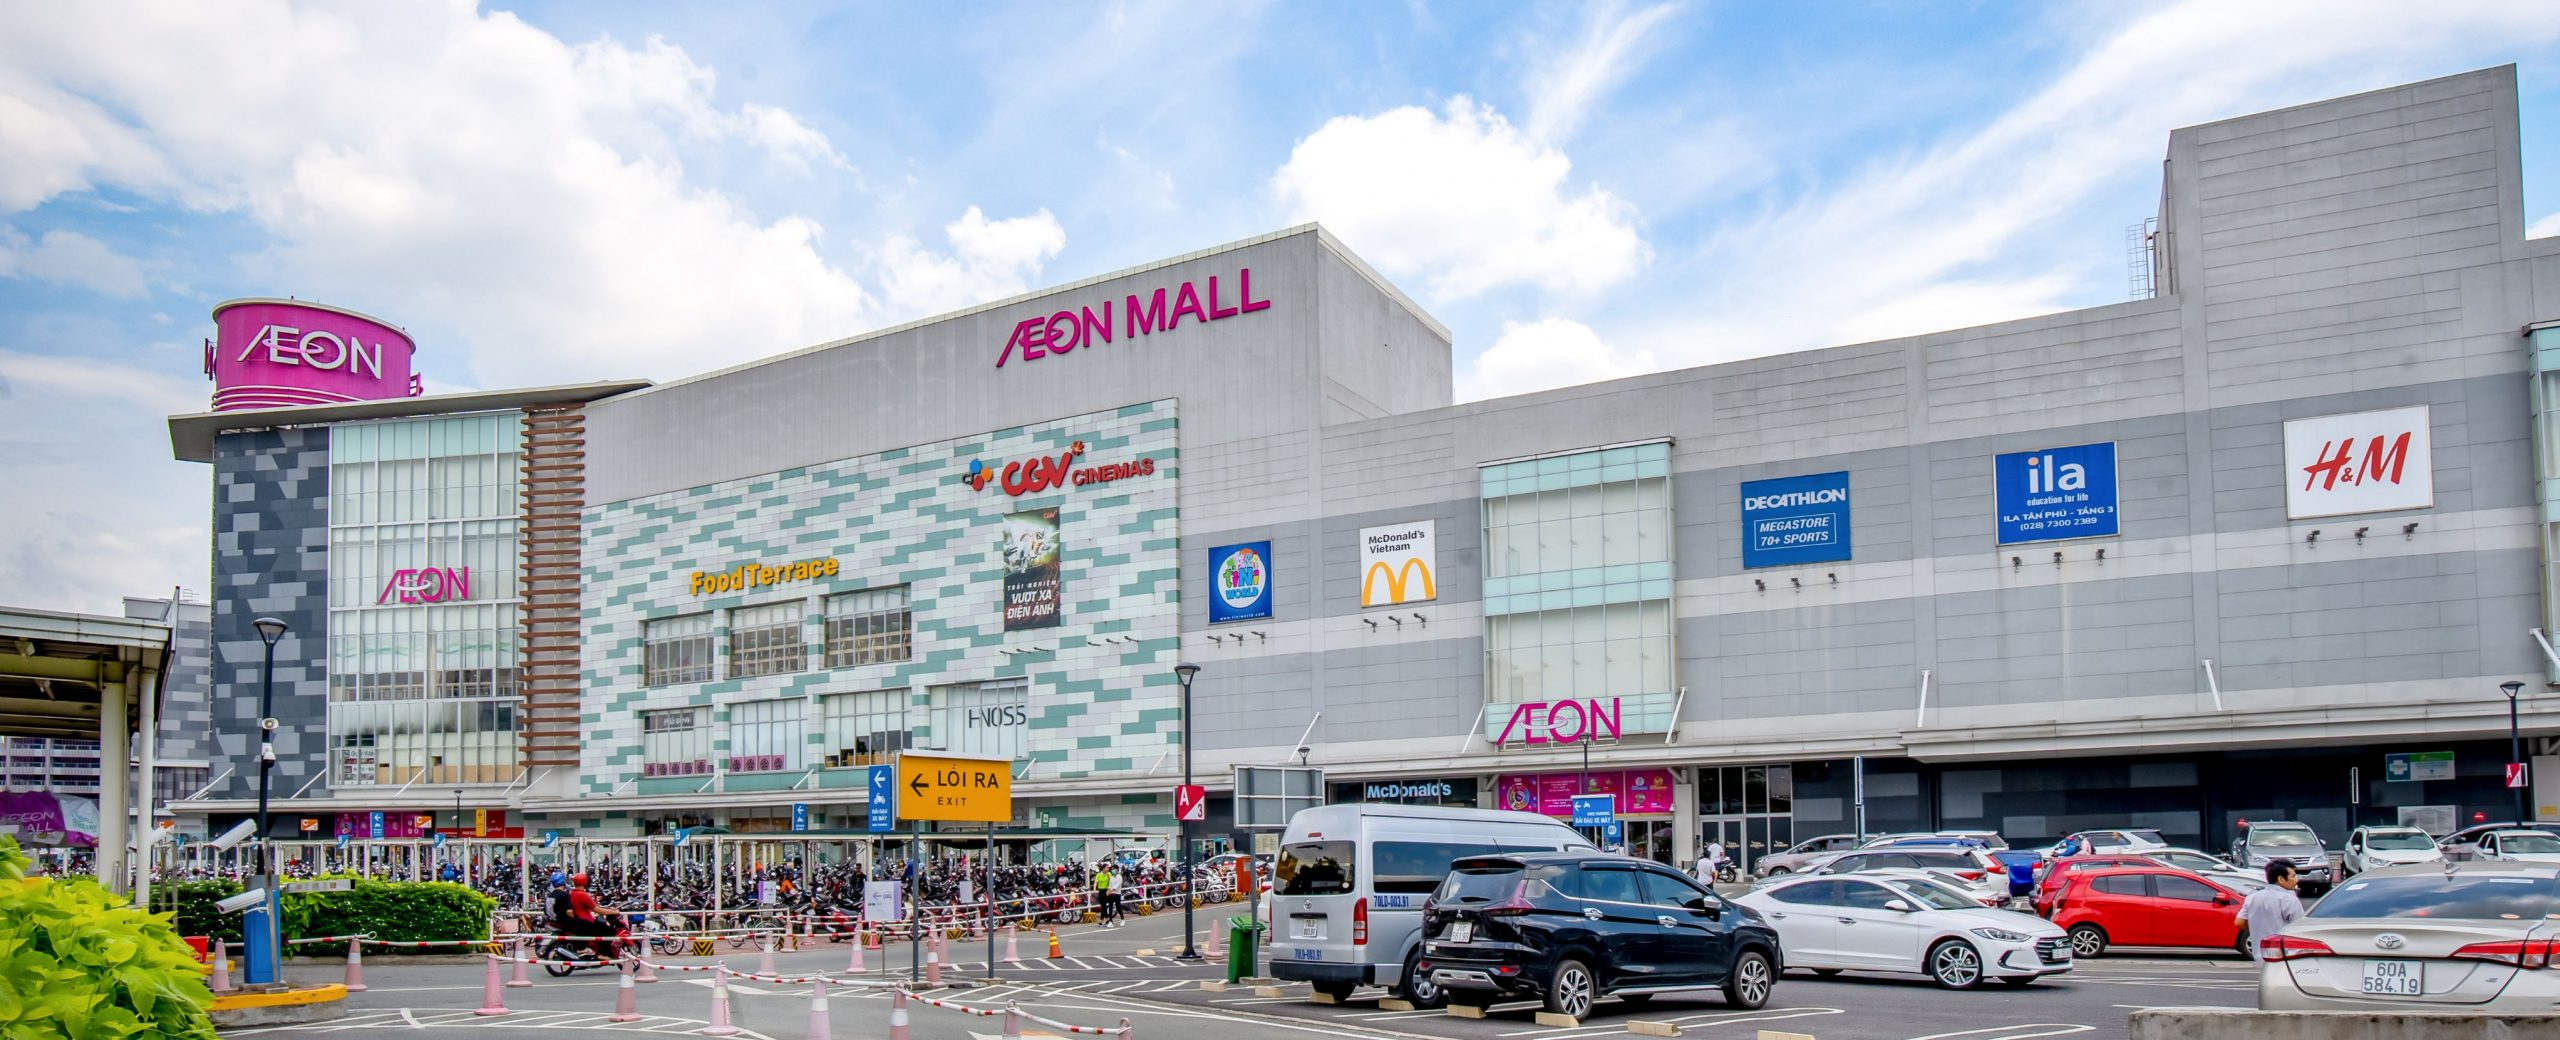 AEON MALL Tan Phu Celadon